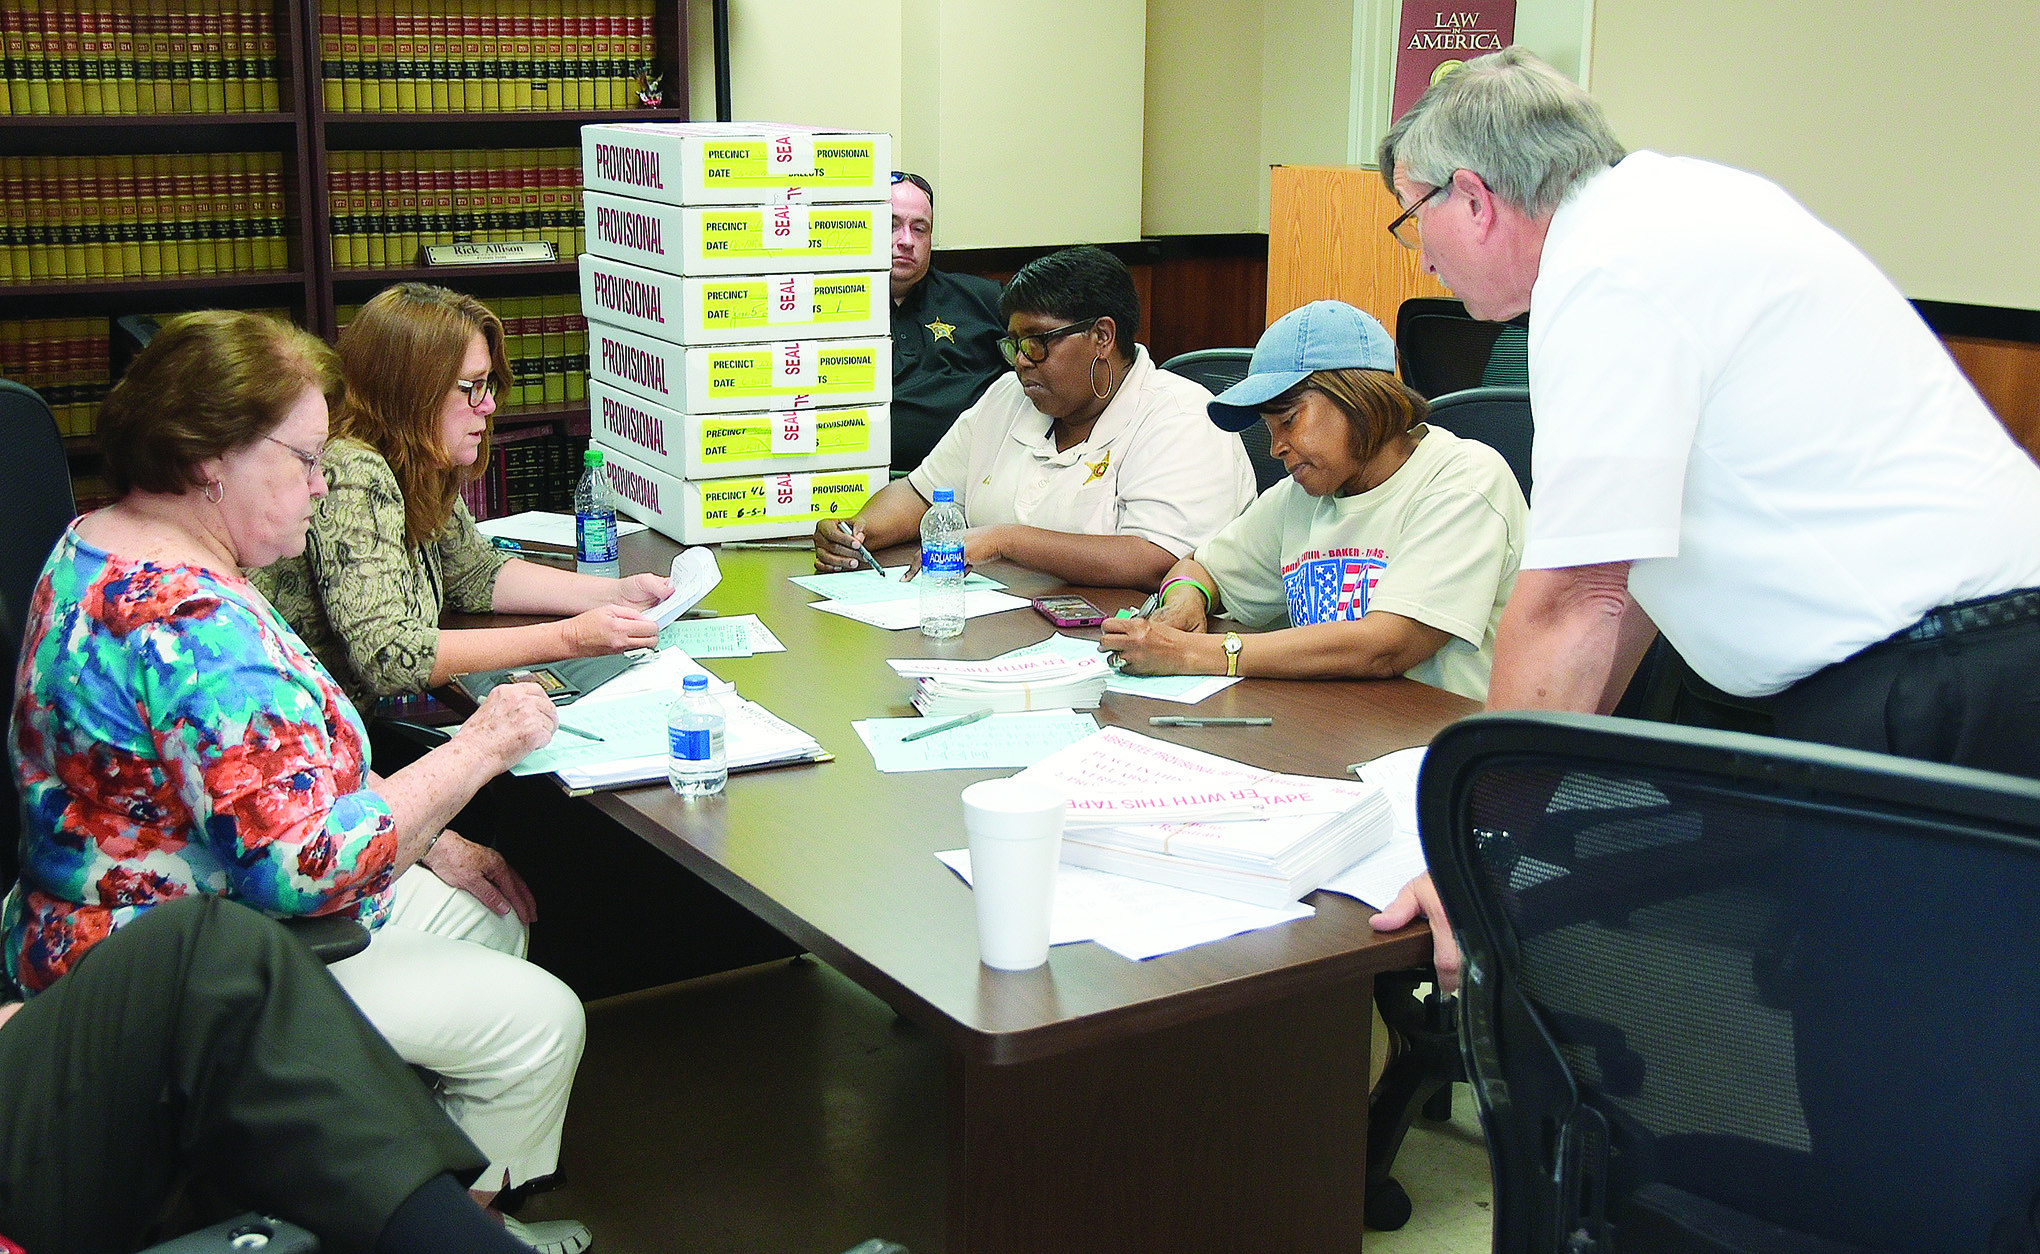 Walker County Probate Judge Rick Allison, at right, and other officials go over the results following the counting of provisional ballots from last week's primary election in Walker County.  From left are Linda Ensor, chairman of the Walker County Republican Party; Walker County Circuit Clerk Susan Odom; Myrtle Jackson of the Walker County Sheriff's Office; and Shirley Mitchell, a representative of the Walker County Democratic Party.